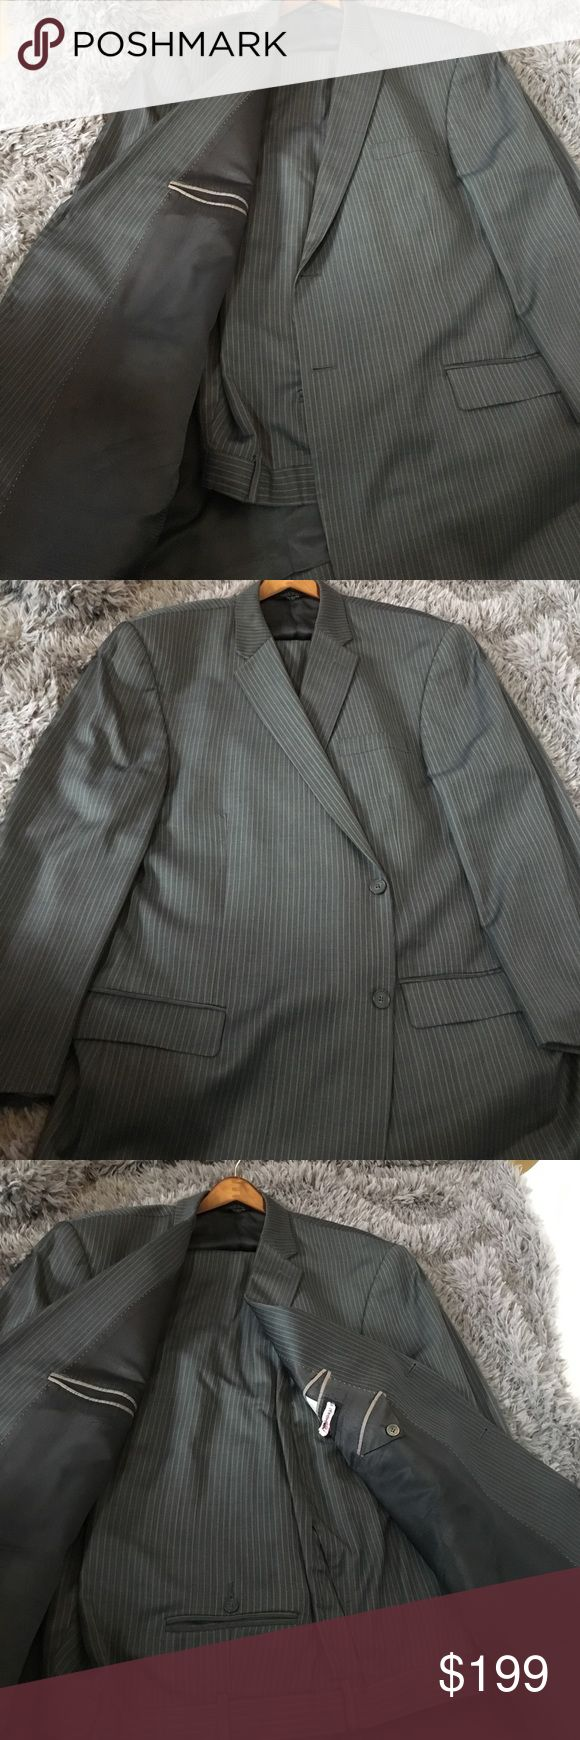 Gray pinstripe men's suit Gray pinstripe Claiborne men's pants suit - 100% Wool Claiborne Suits & Blazers Suits